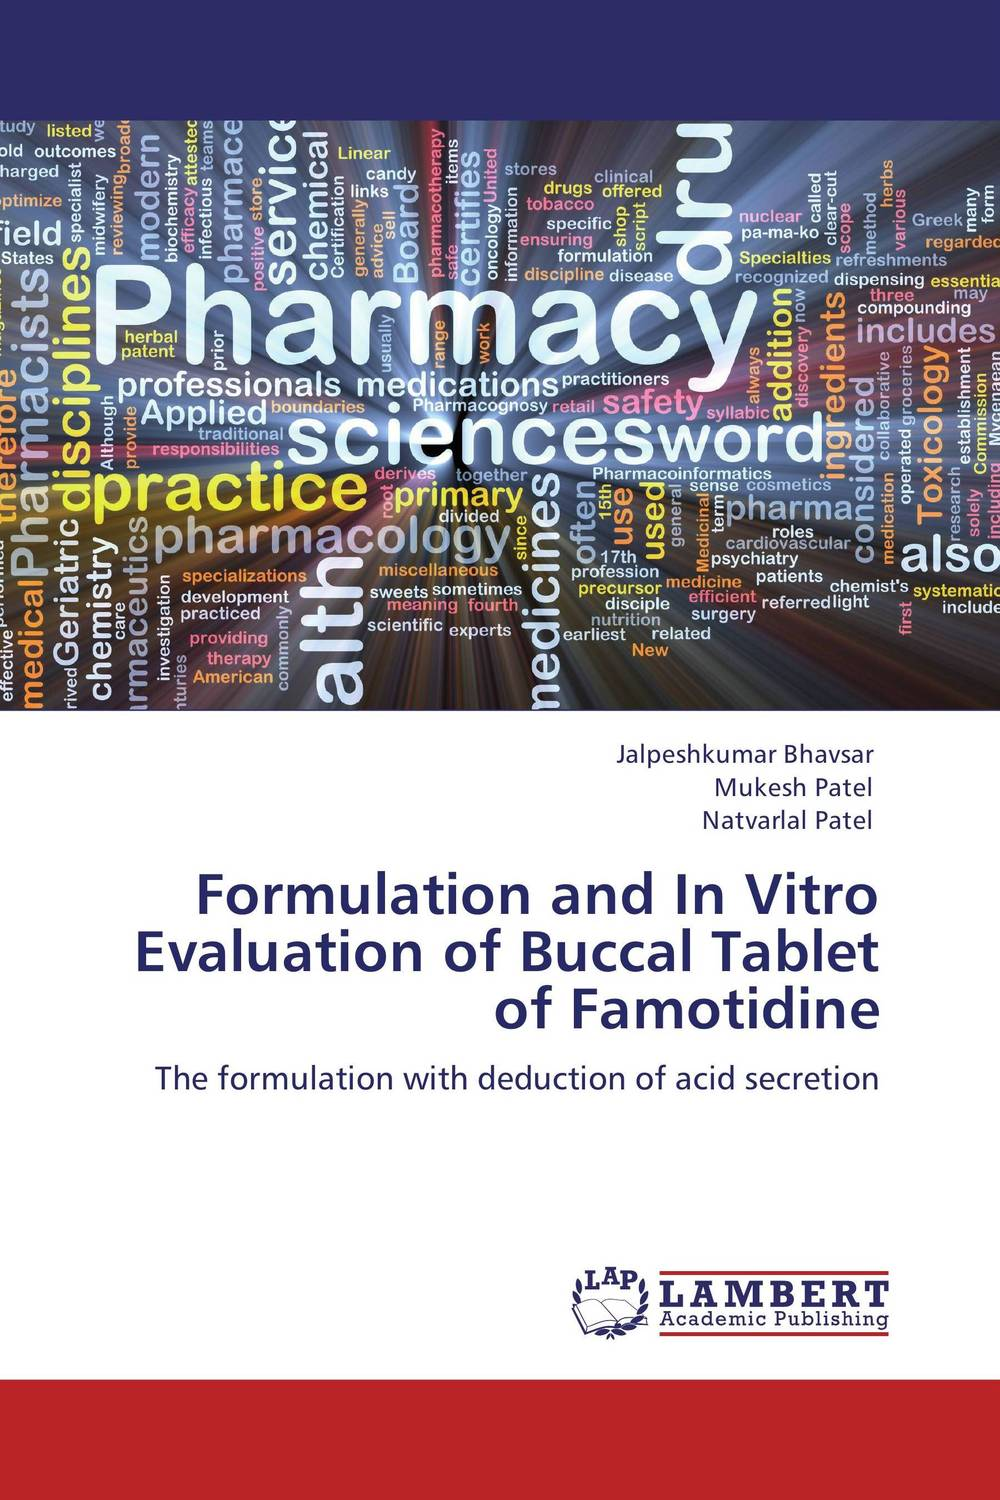 Formulation and In Vitro Evaluation of Buccal Tablet of Famotidine formulation and evaluation of mucoadhesive buccal patches of labetalol page 8